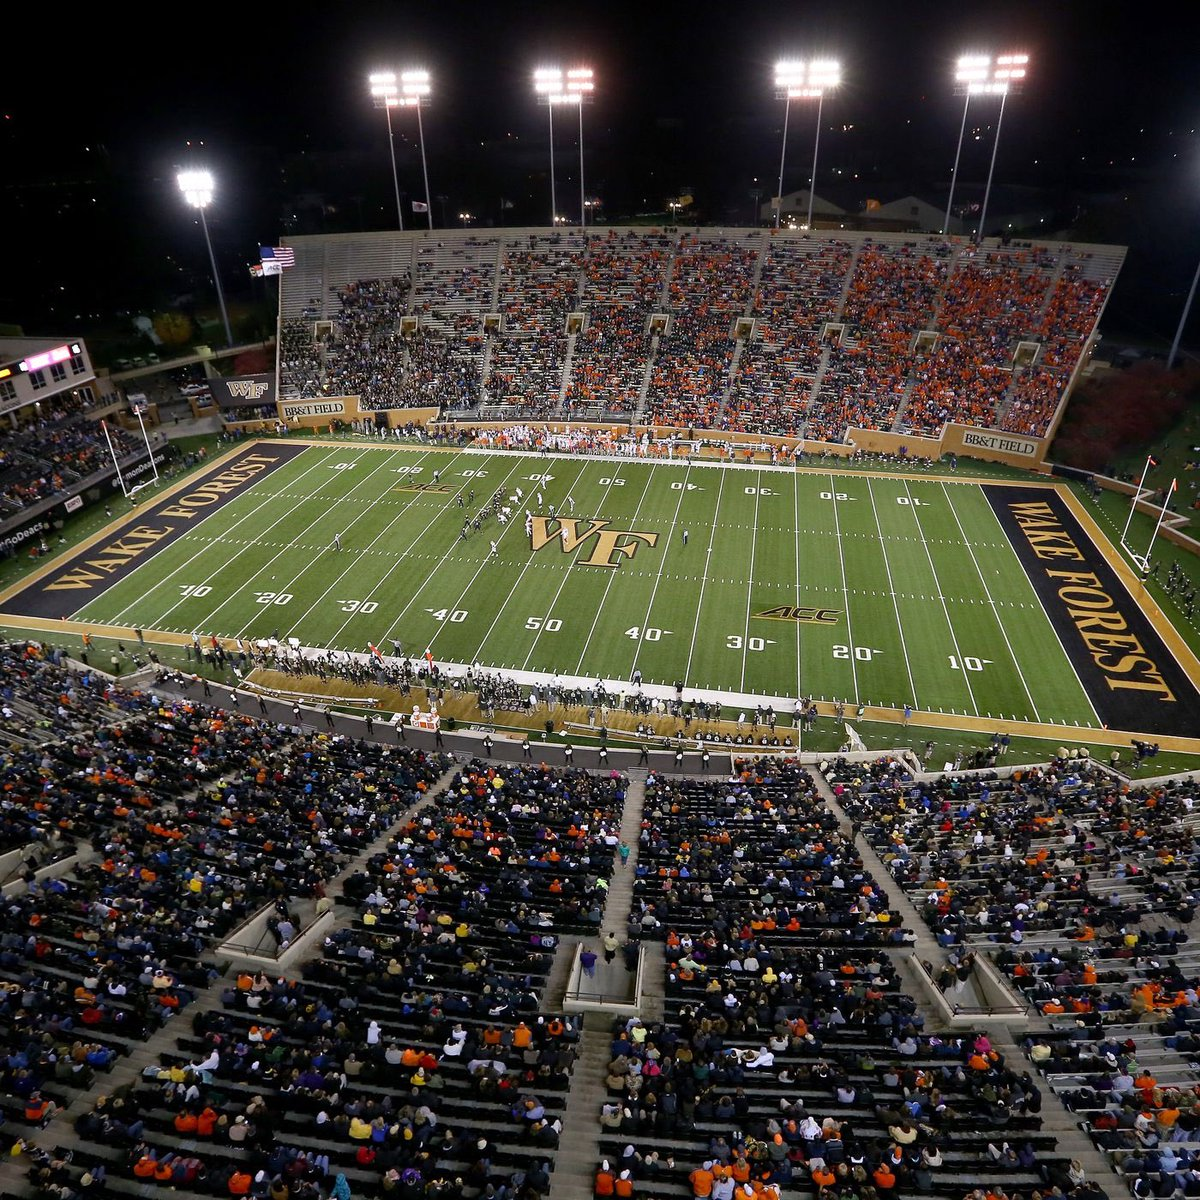 Thankful to get an offer from Wake Forest University!! @CoachClawson @philipcj65 @coachkatzbhs @Mansell247 @ChadSimmons_ https://t.co/n5SF5LC2fo